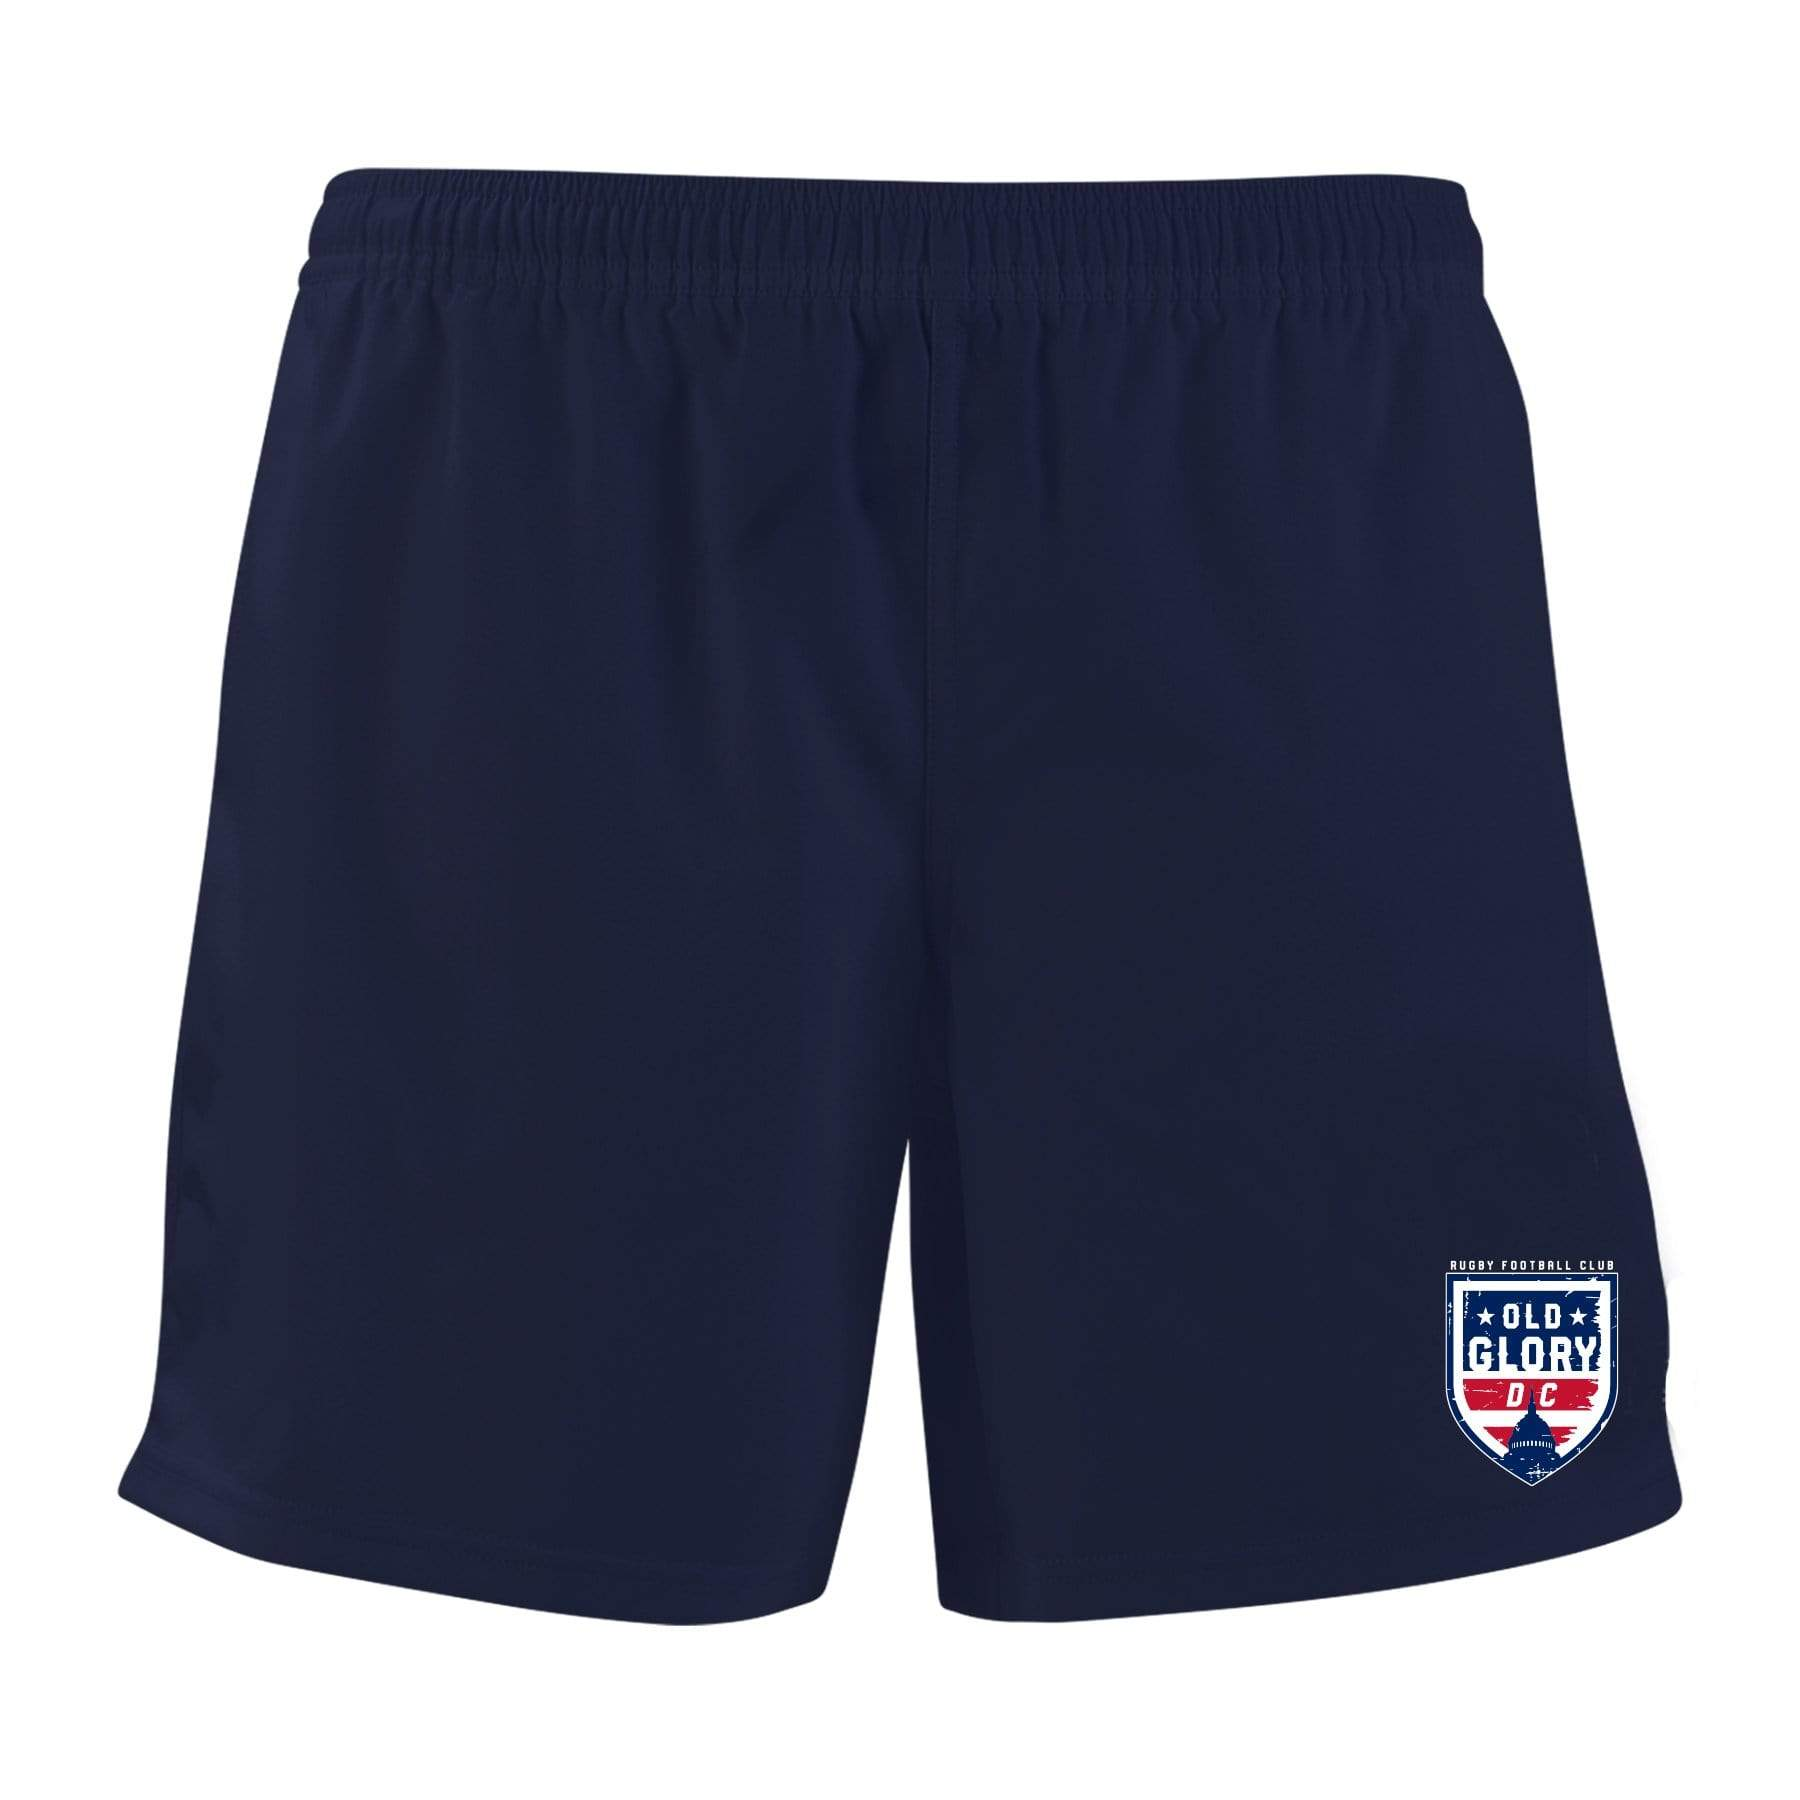 Old Glory DC Men's Athletic Long Shorts